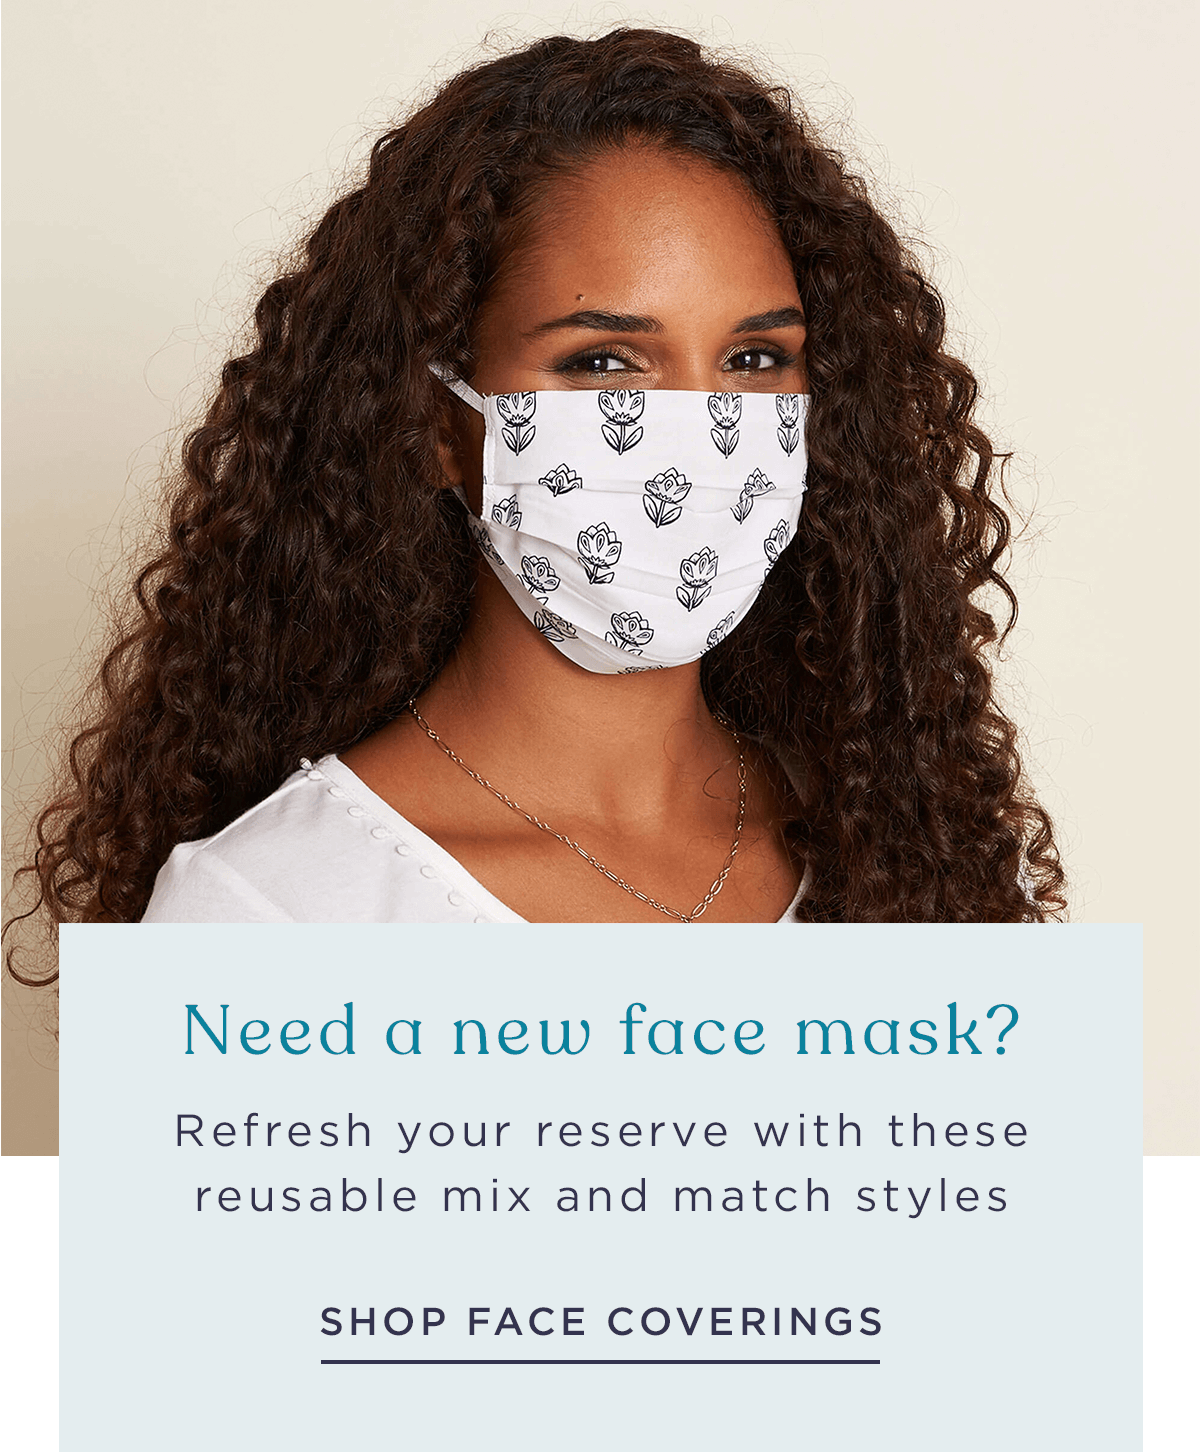 Refresh your reserve with these reusable face coverings